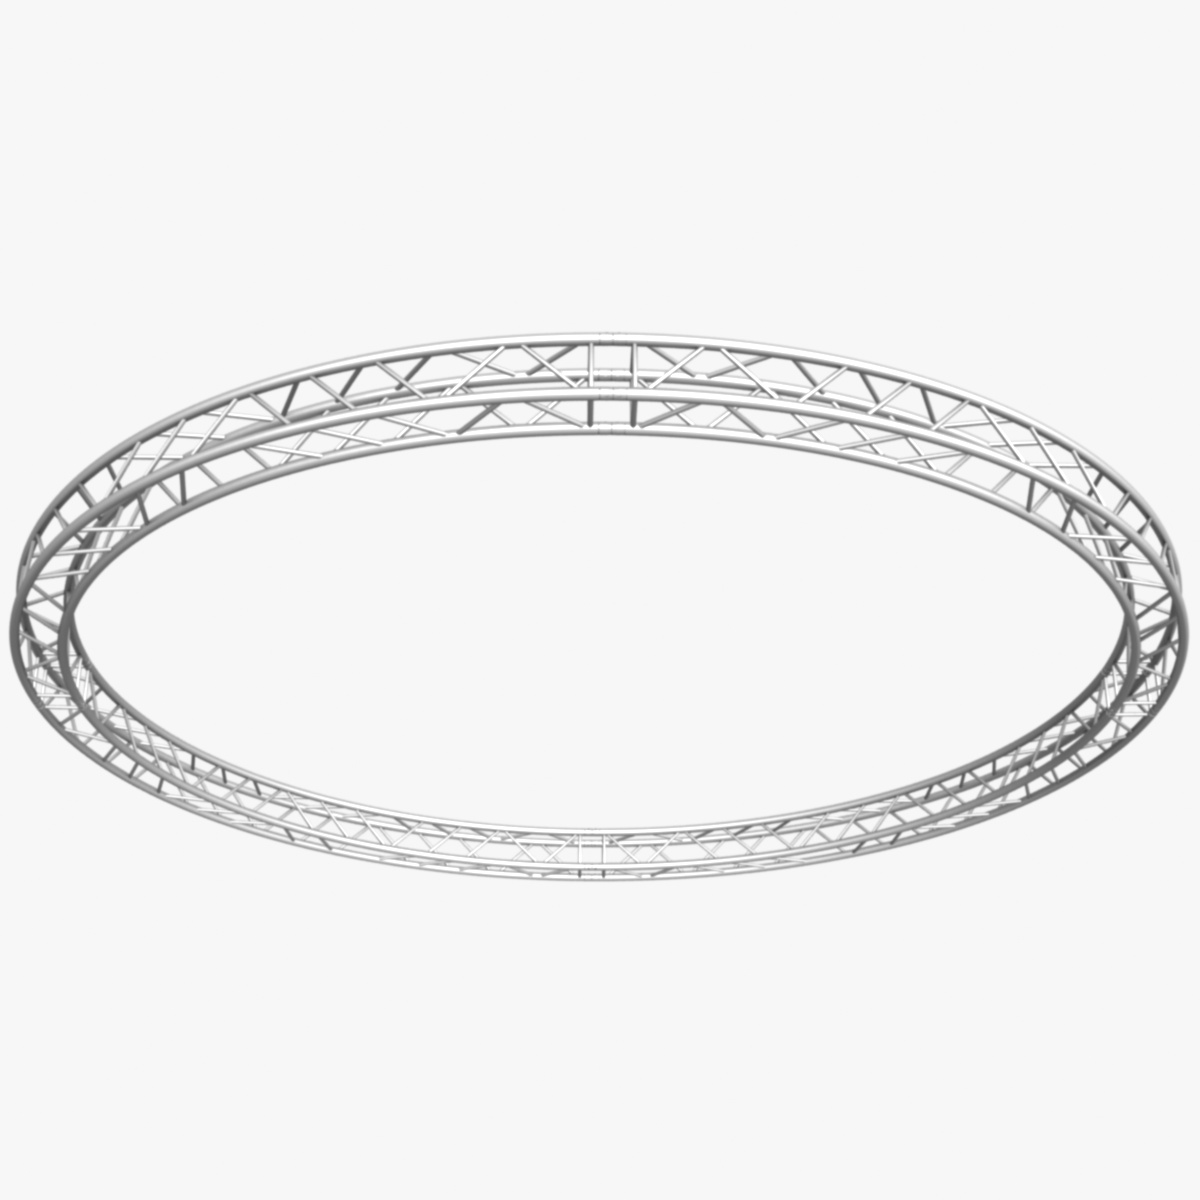 circle square truss (full diameter 600cm) 3d model 3ds max dxf fbx c4d dae  obj 253100